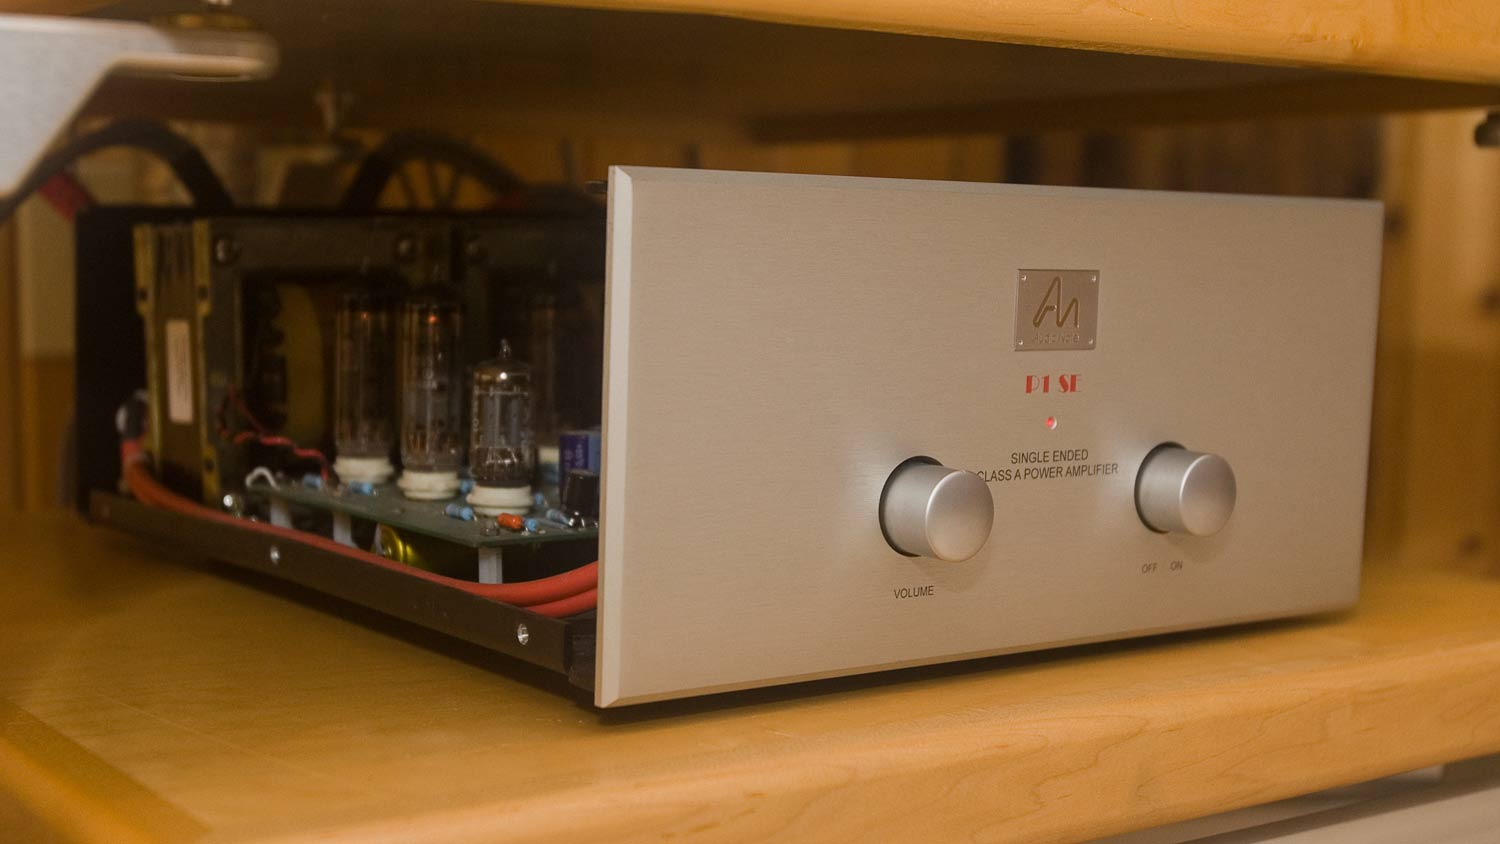 https://audiofederation.com/wp-content/uploads/2014/12/IMG_0757-audio-note-p1-se-amplifier.jpg